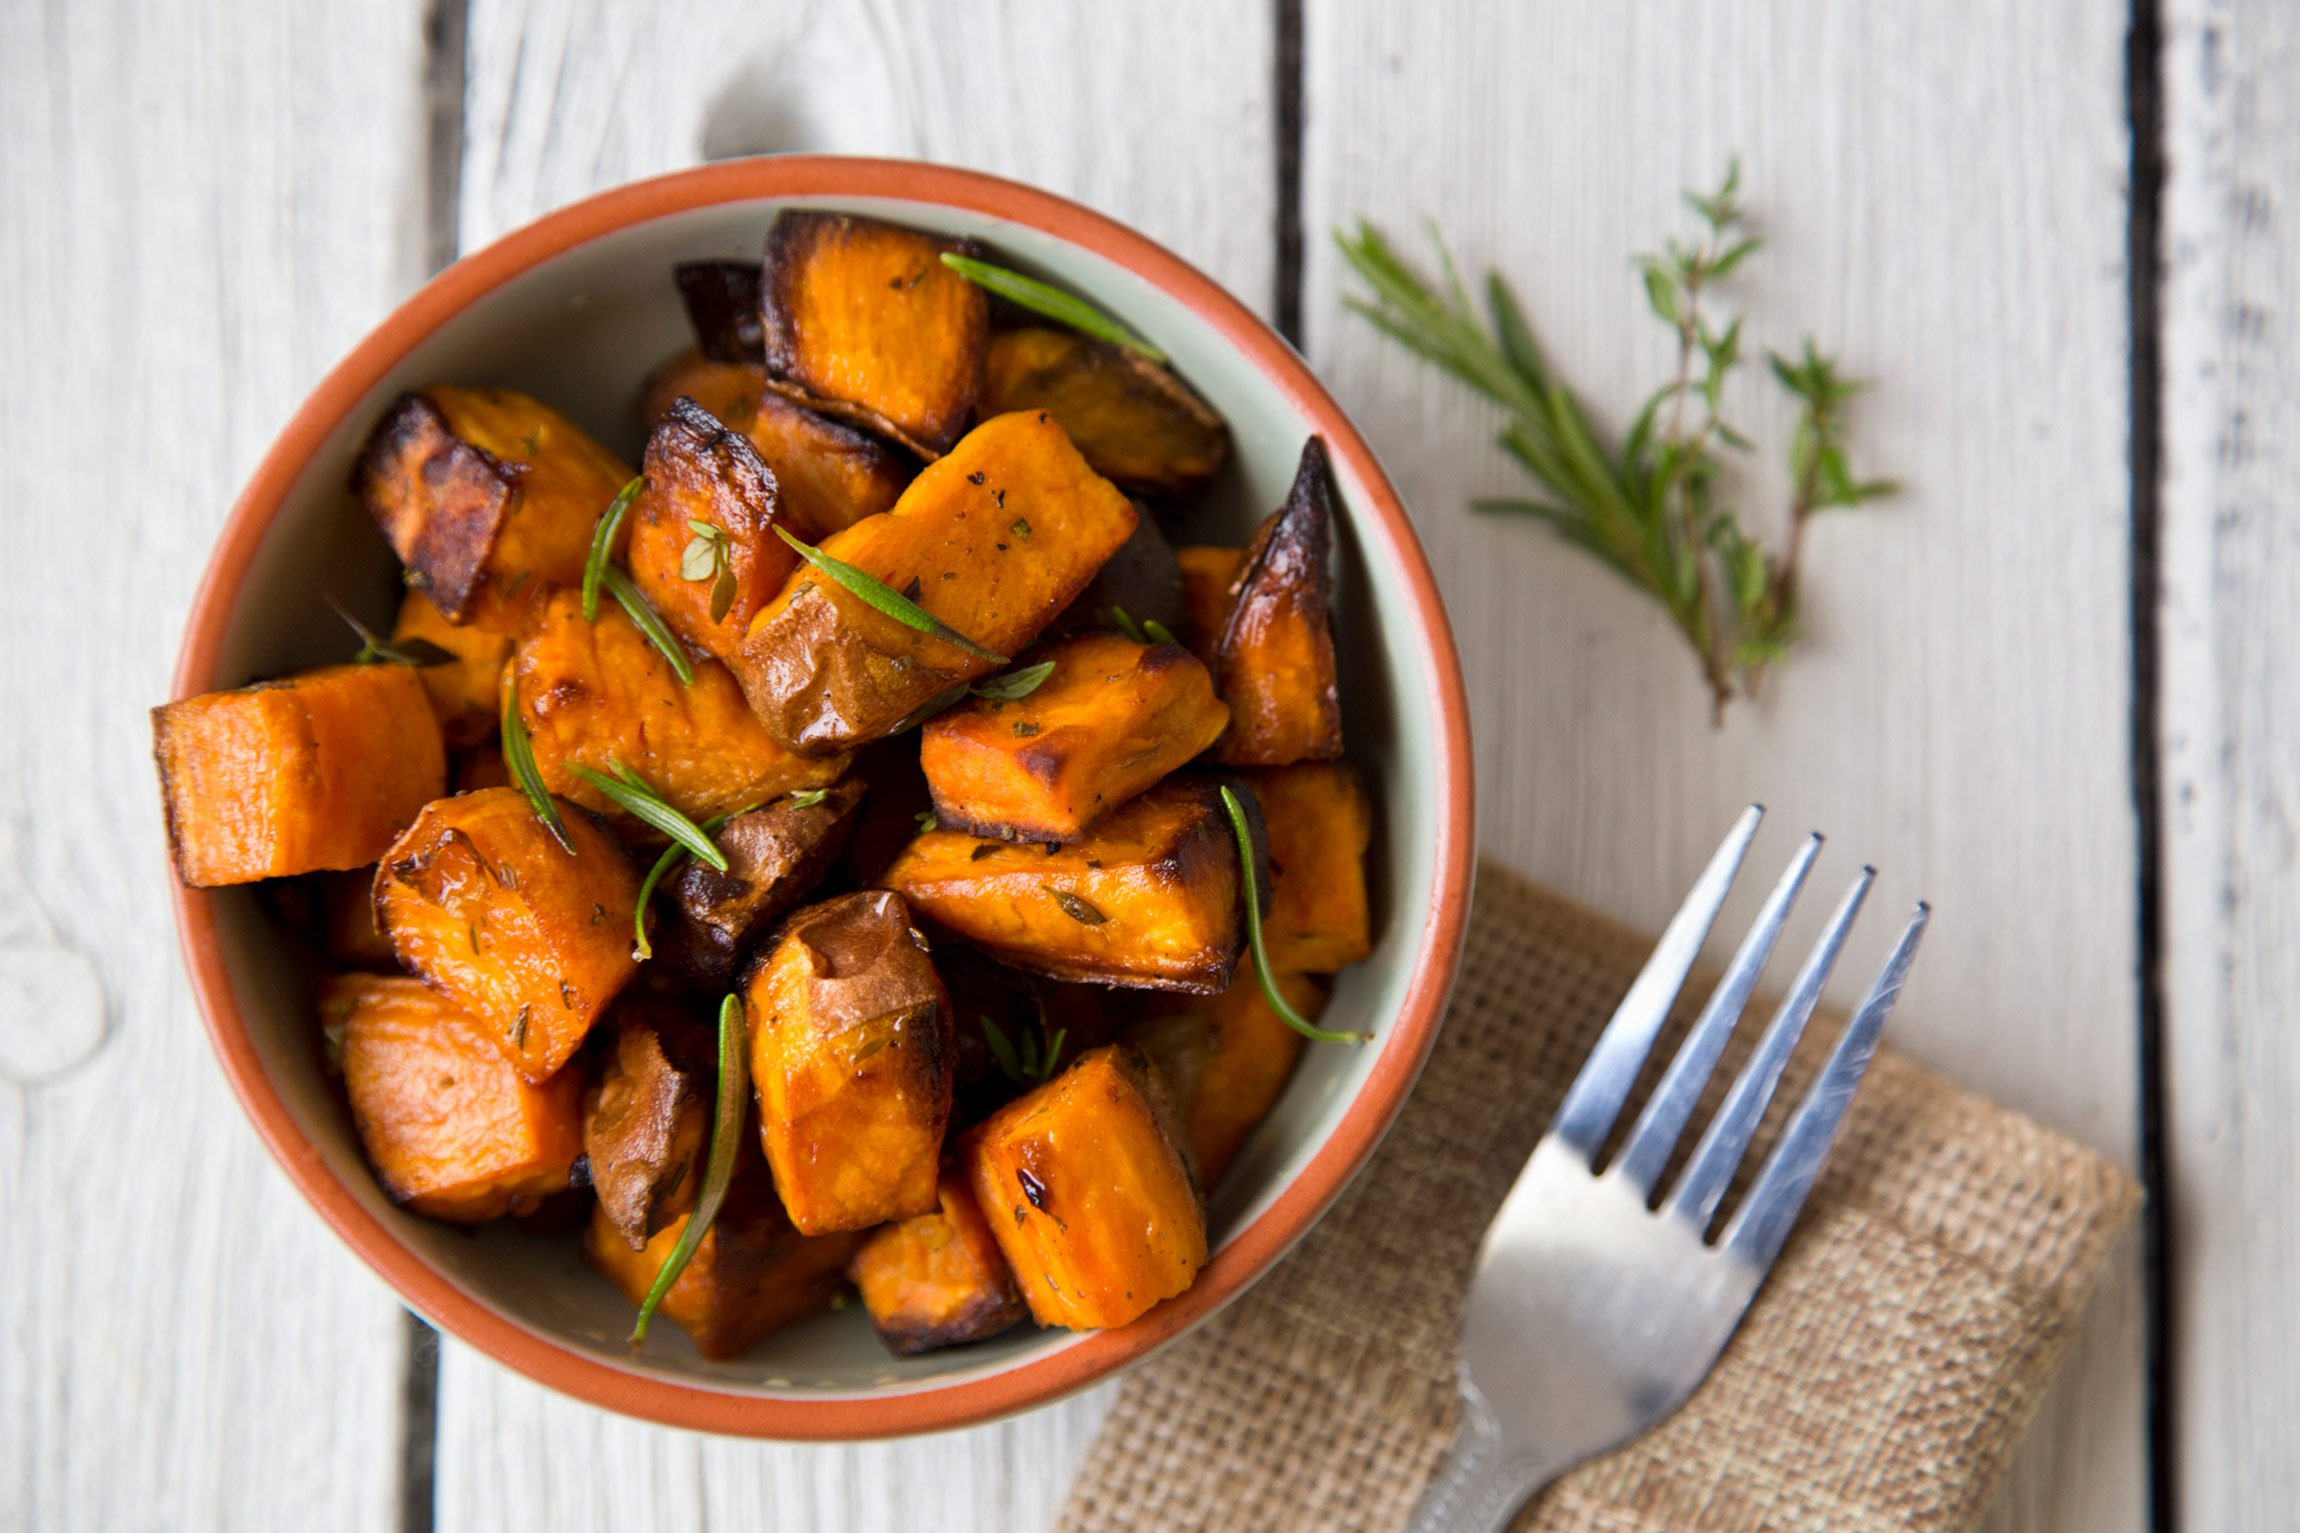 A bowl of roasted sweet potatoes.